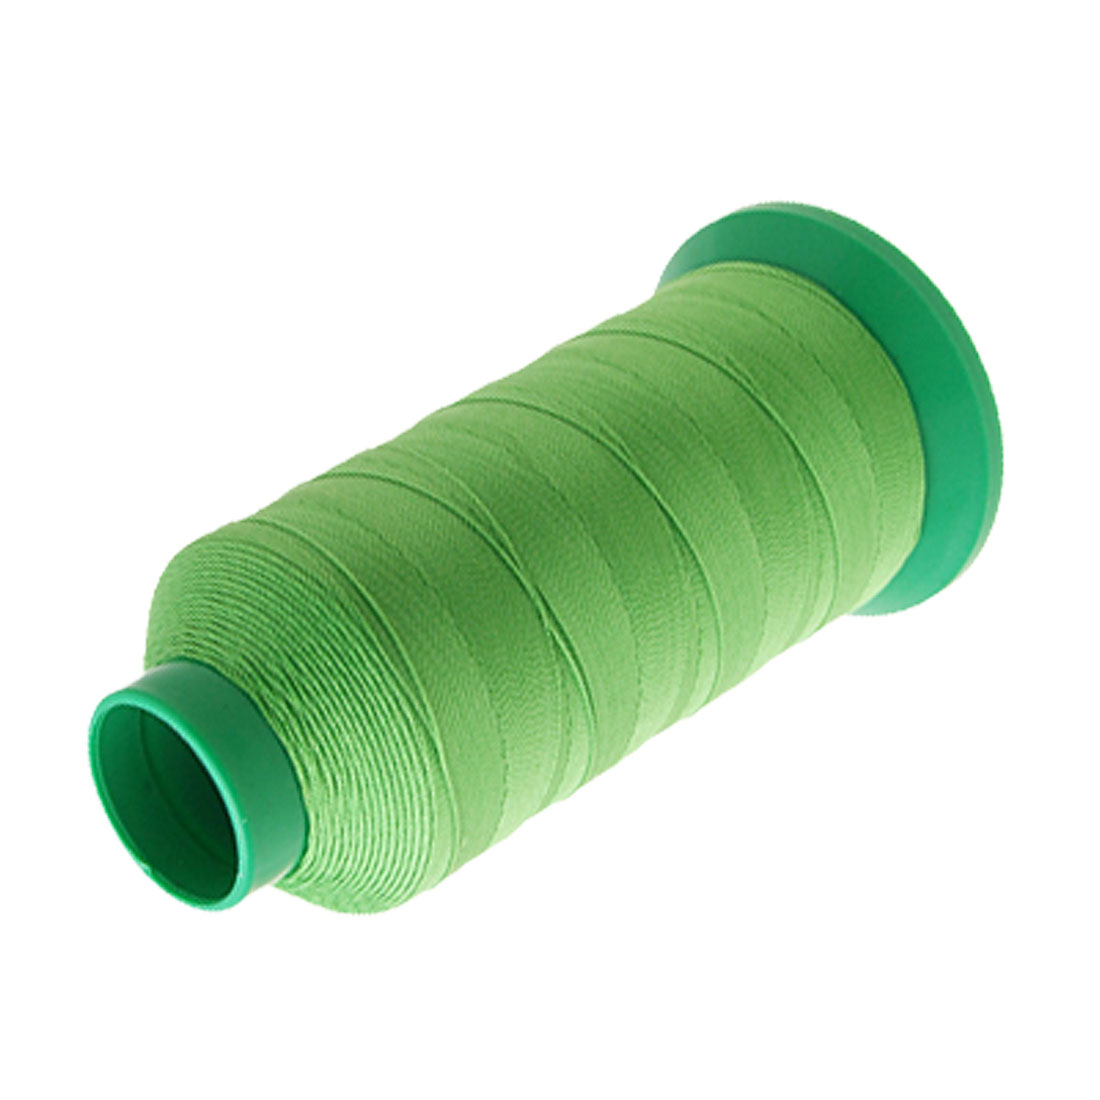 Green 300m Polyester Sewing Stitching Tailoring Line